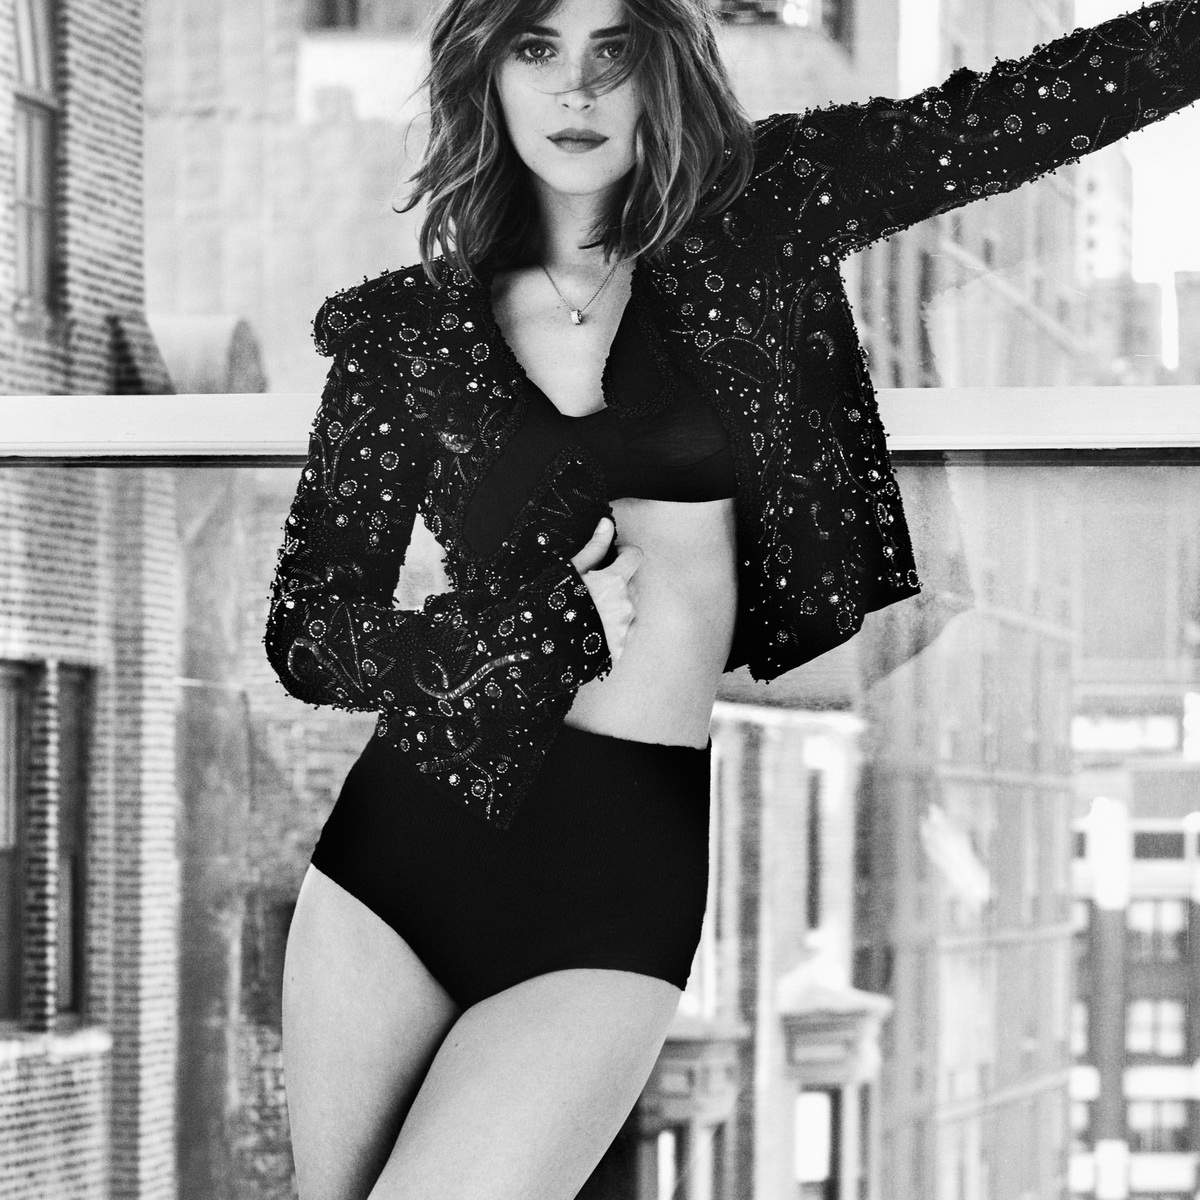 Dakota Johnson black and white - Dakota Johnson Net Worth, Movies, Family, Boyfriend, Pictures and Wallpapers